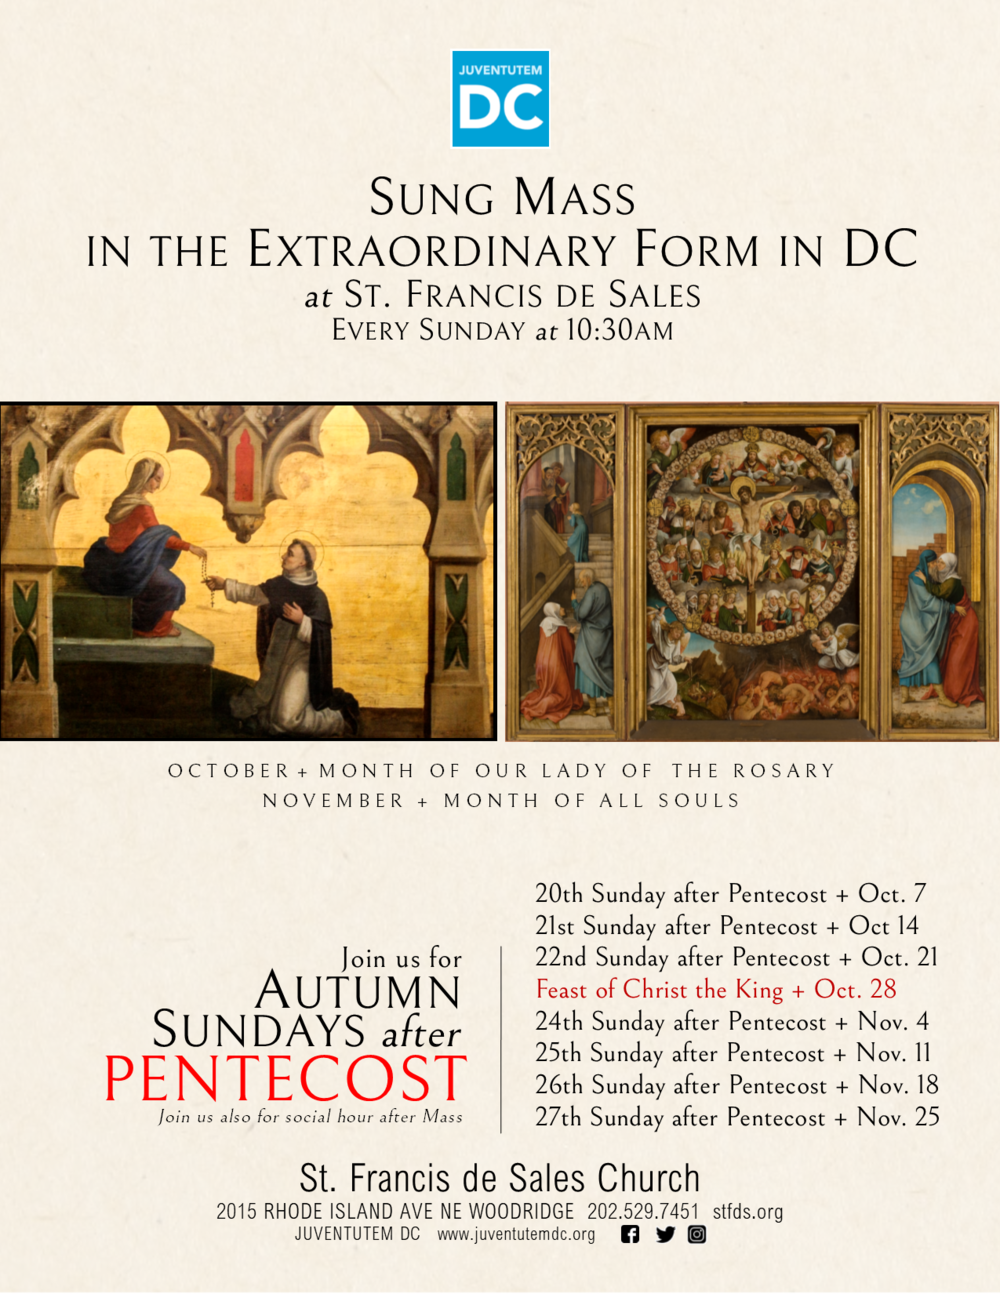 2018 09 Autumn Sundays after Pentecost v2 London.png